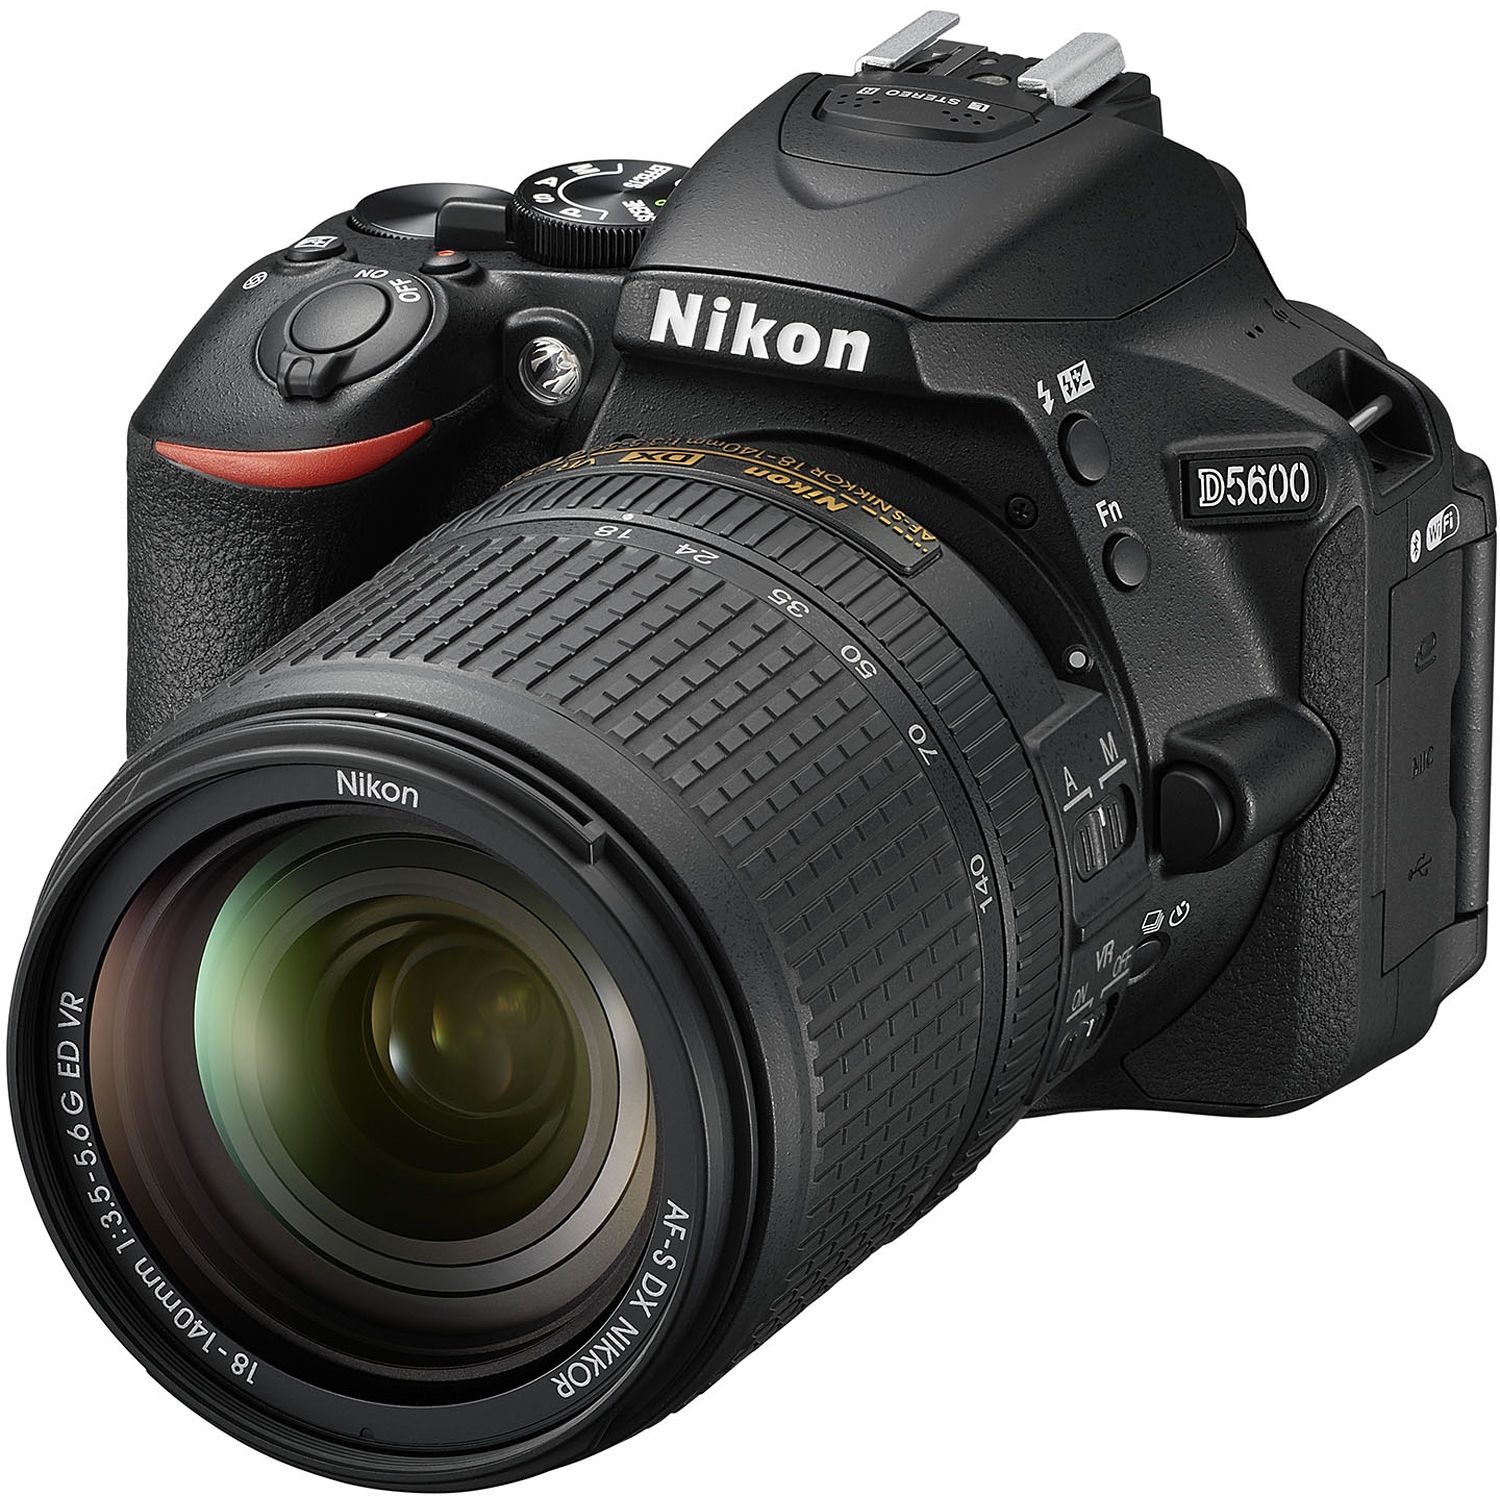 Nikon D5600 - This camera has a few extras, and was a nice step up from the D3300. I shot photos and video of my kids' sports and family vacations. I really liked its articulating touch screen, Wi-Fi, and Bluetooth.